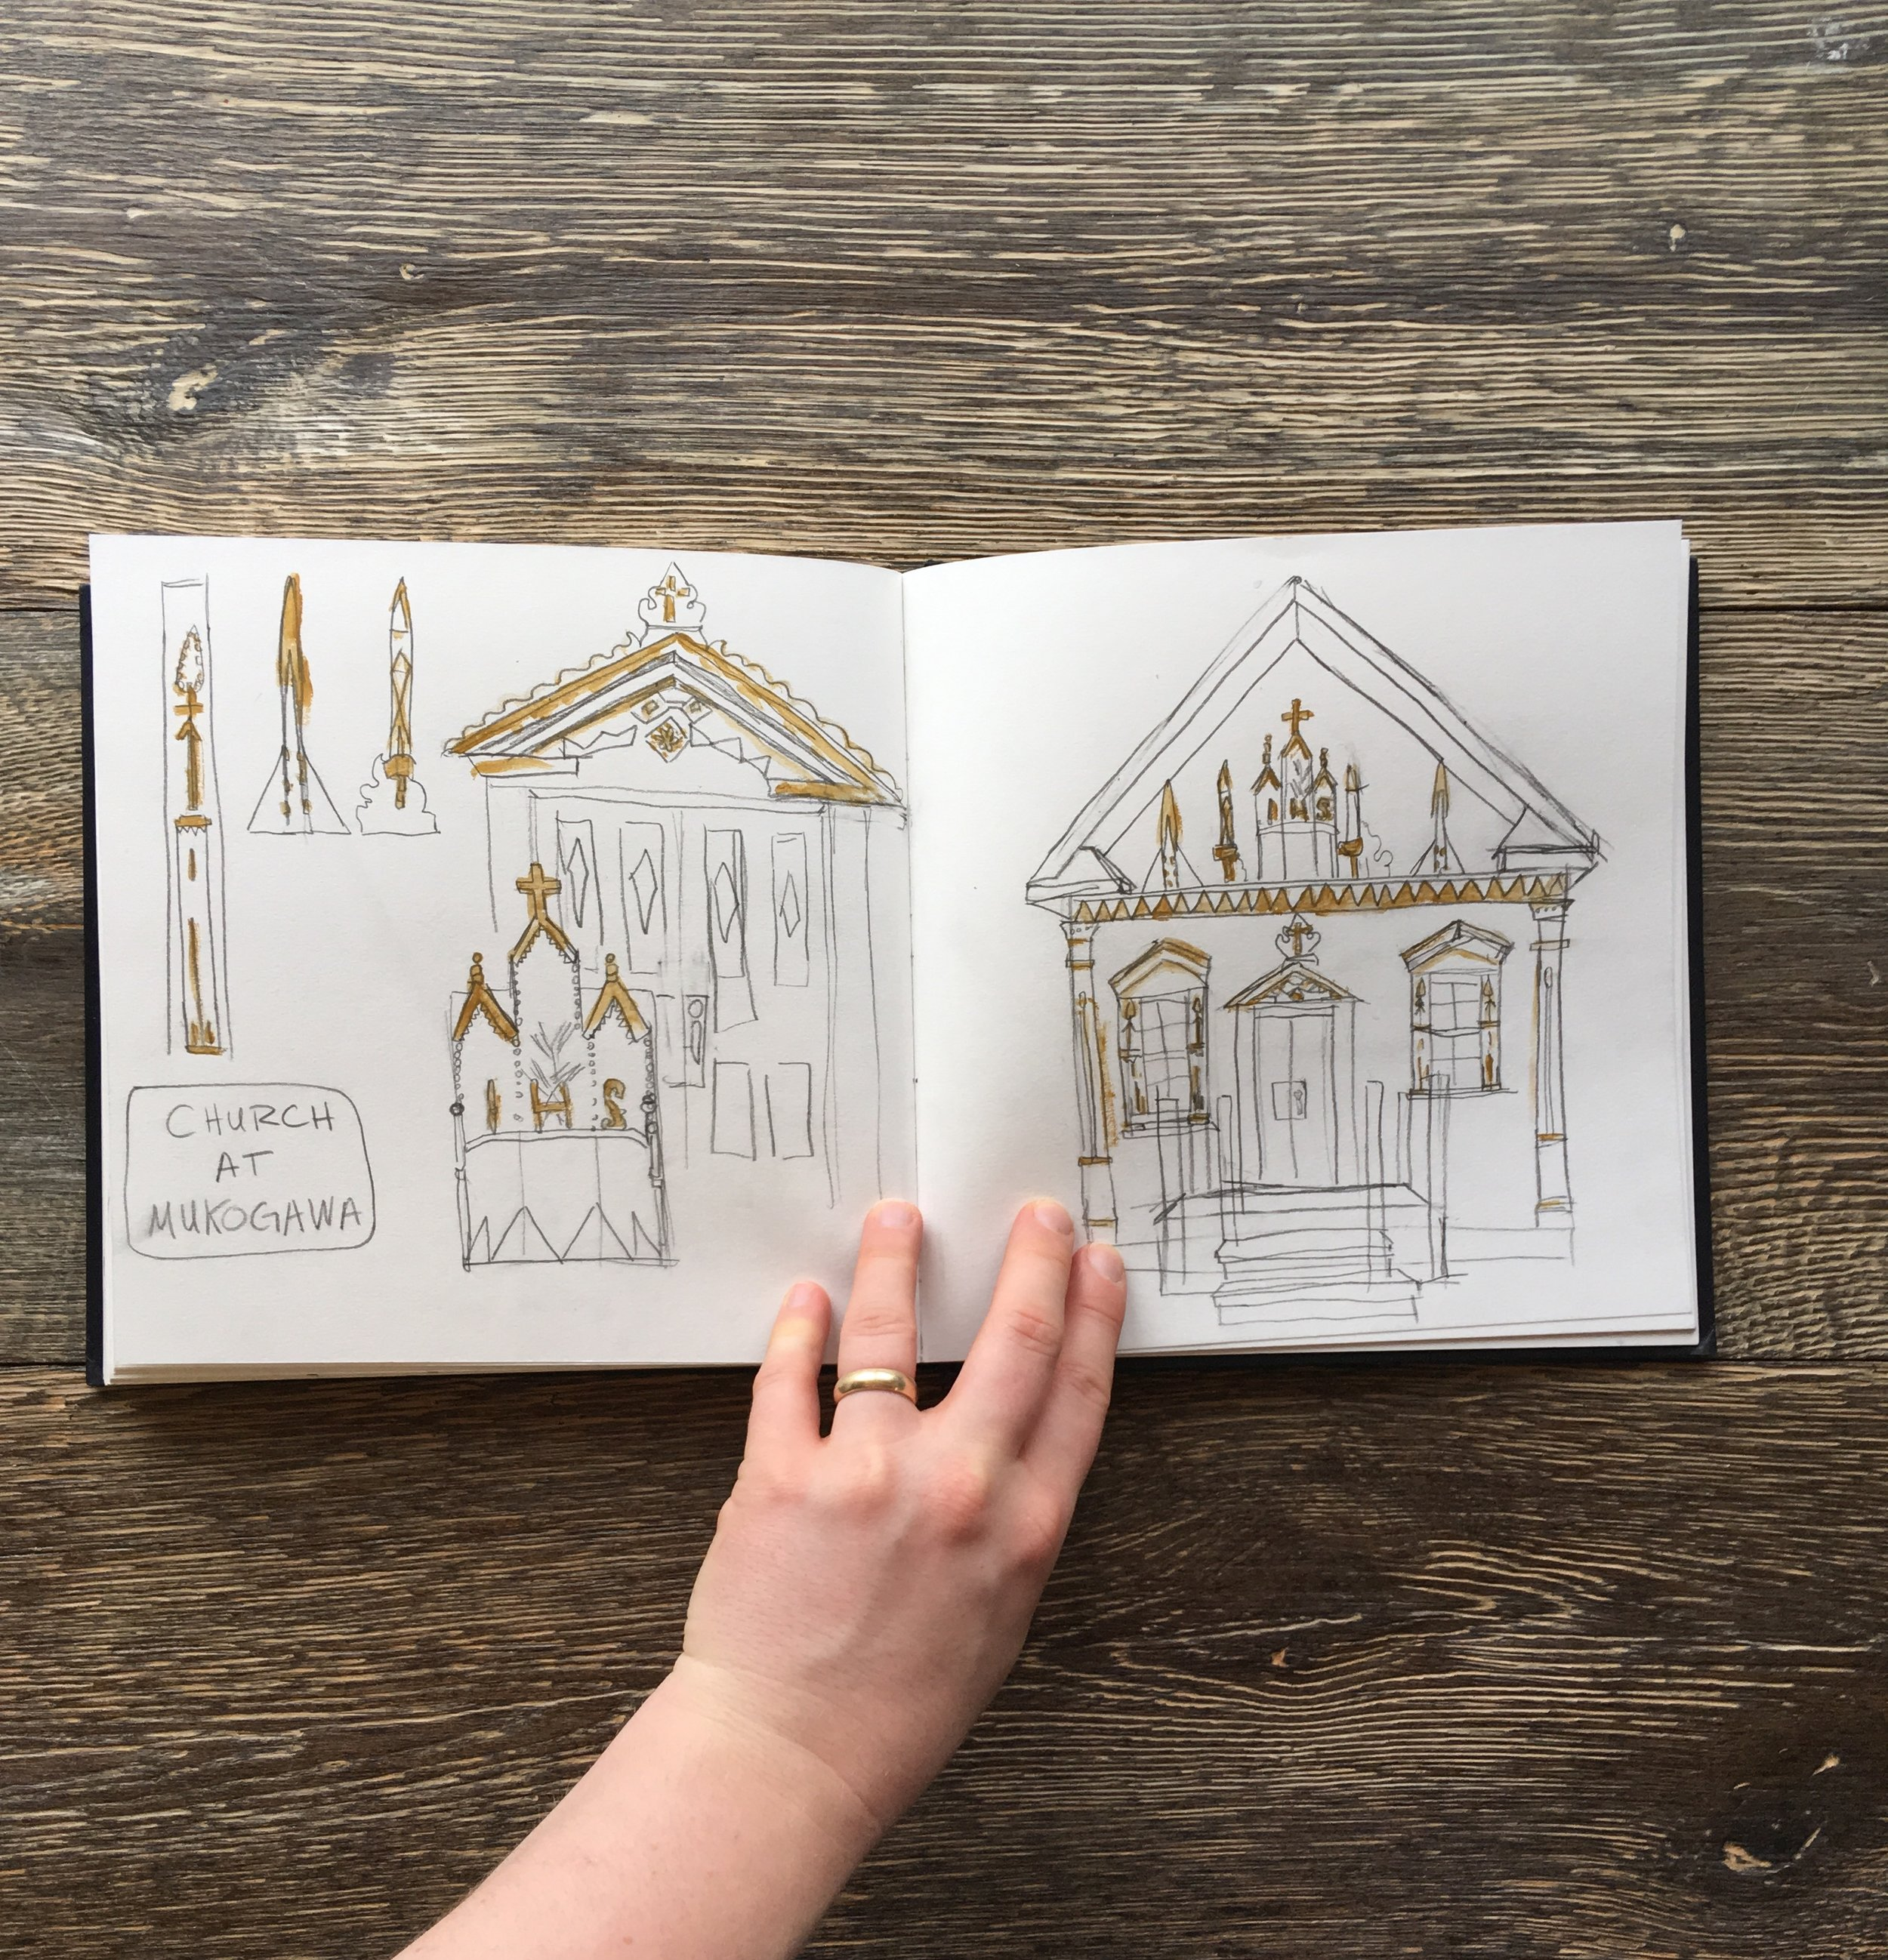 Sketchbook studies of a petite white and gold church decorated with all sorts of interesting shapes. I heard it was moved over the Fort Wright campus from Gonzaga long ago. Anyone have an information about its history?